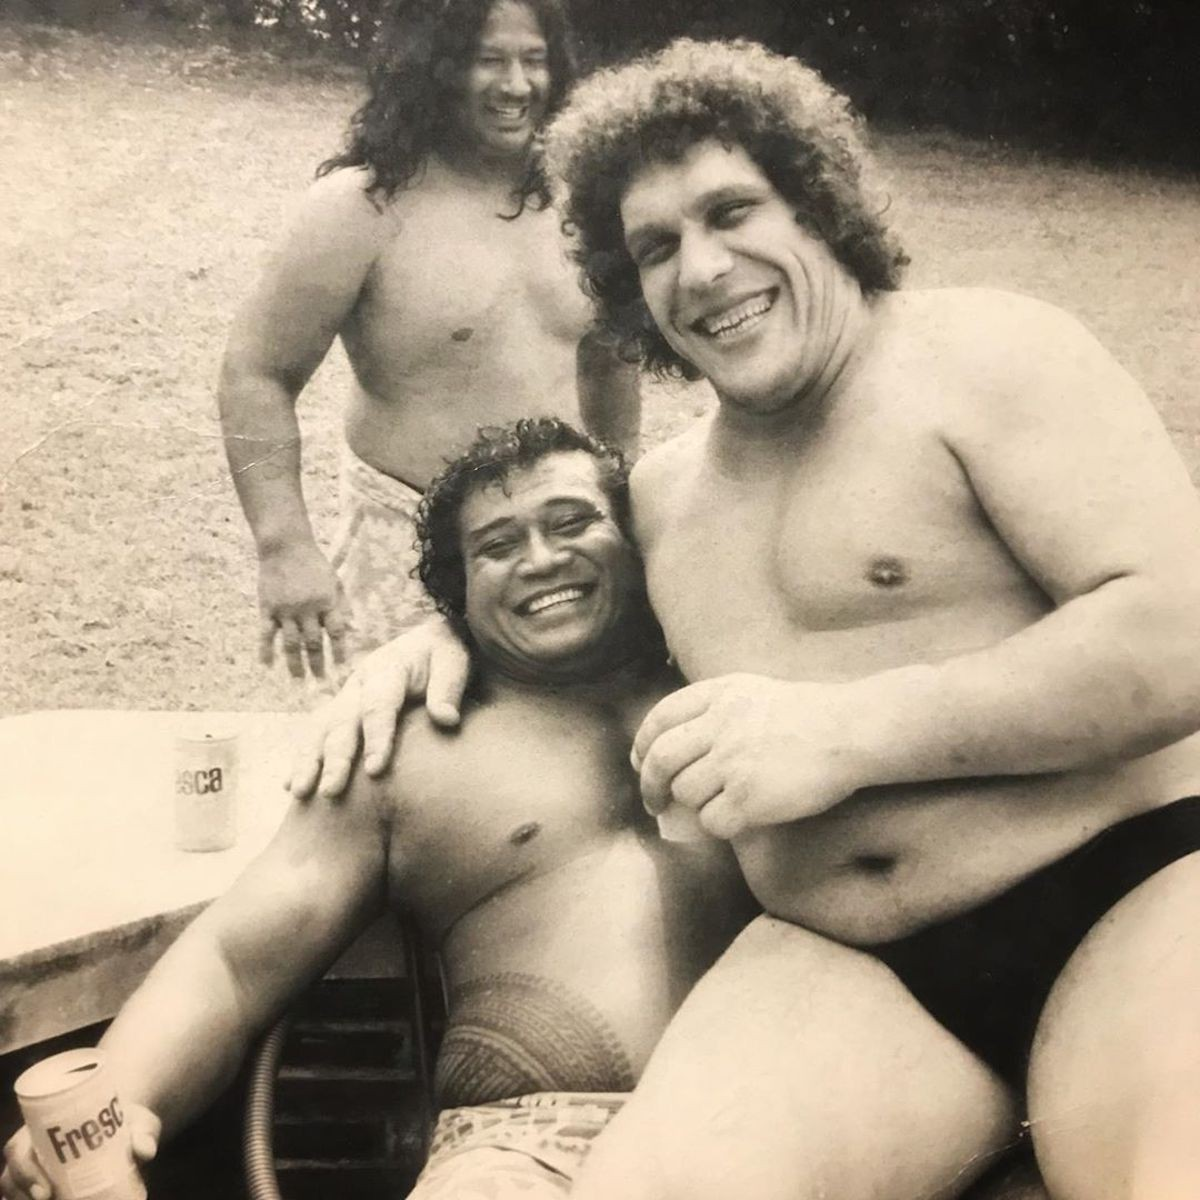 Peter Maivia and Andre the Giant